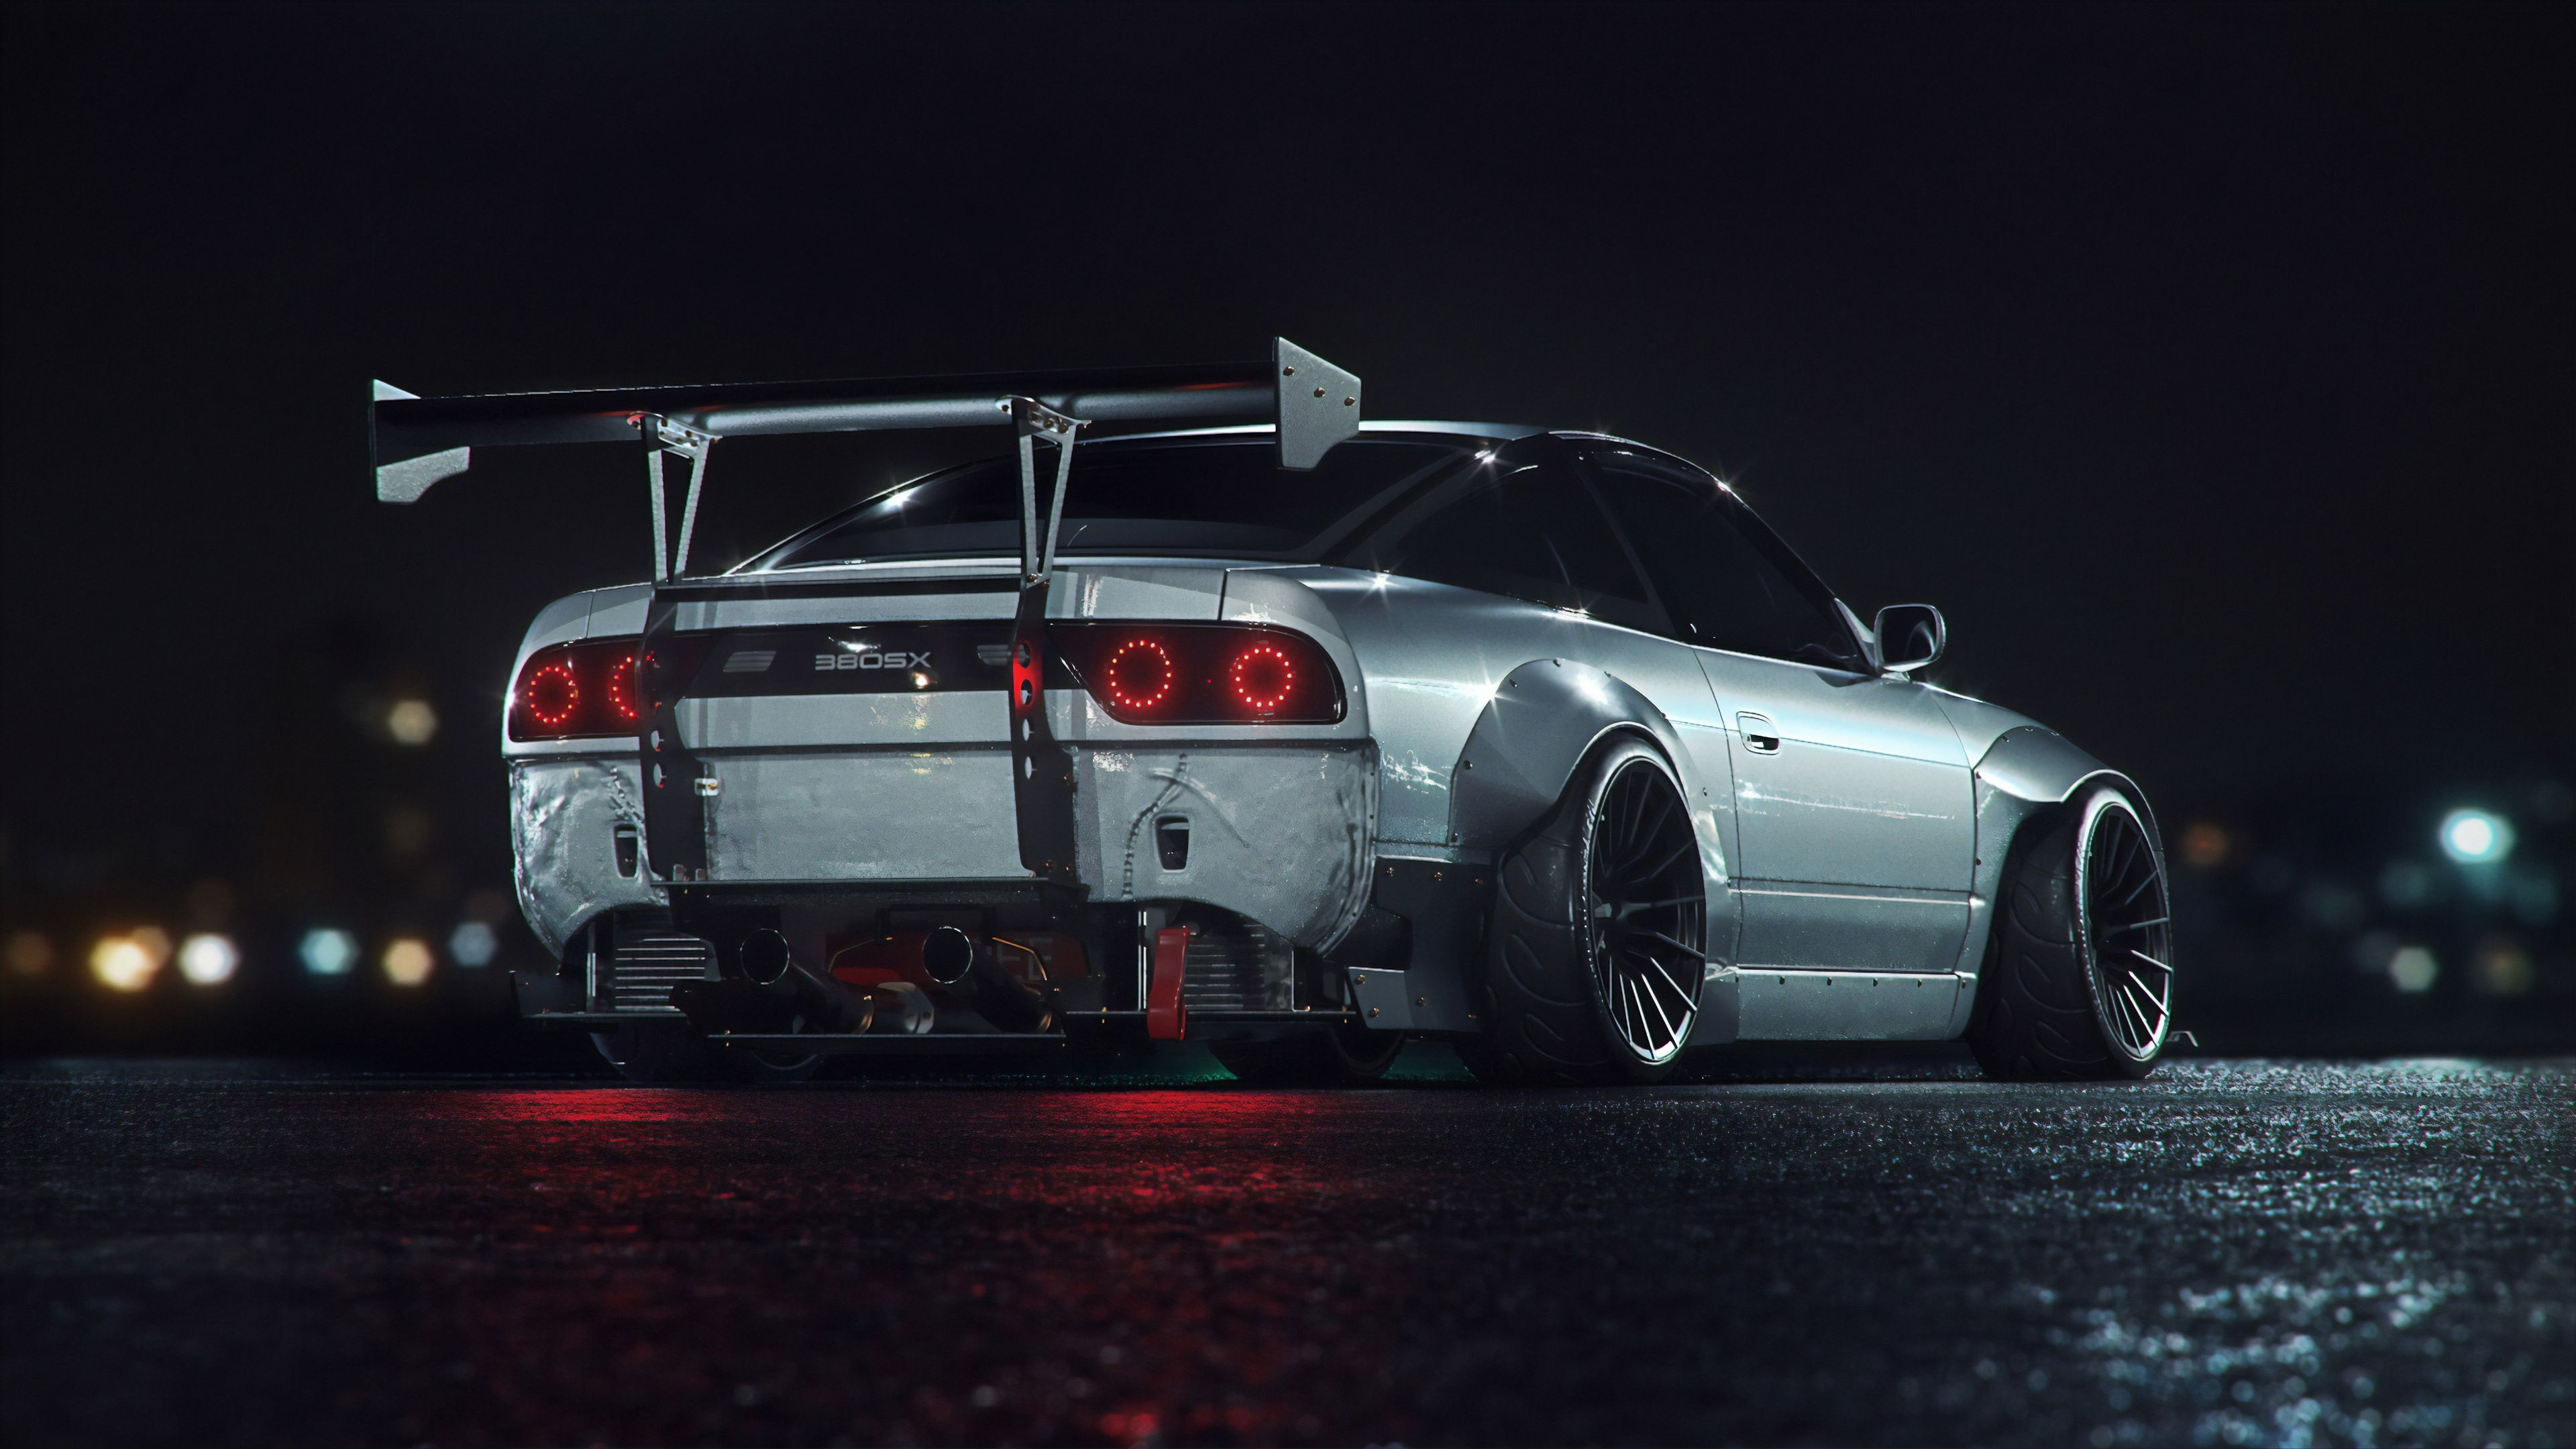 Wallpapersave, your daily source of hd wallpapers authority. Jdm Desktop Wallpaper 4k